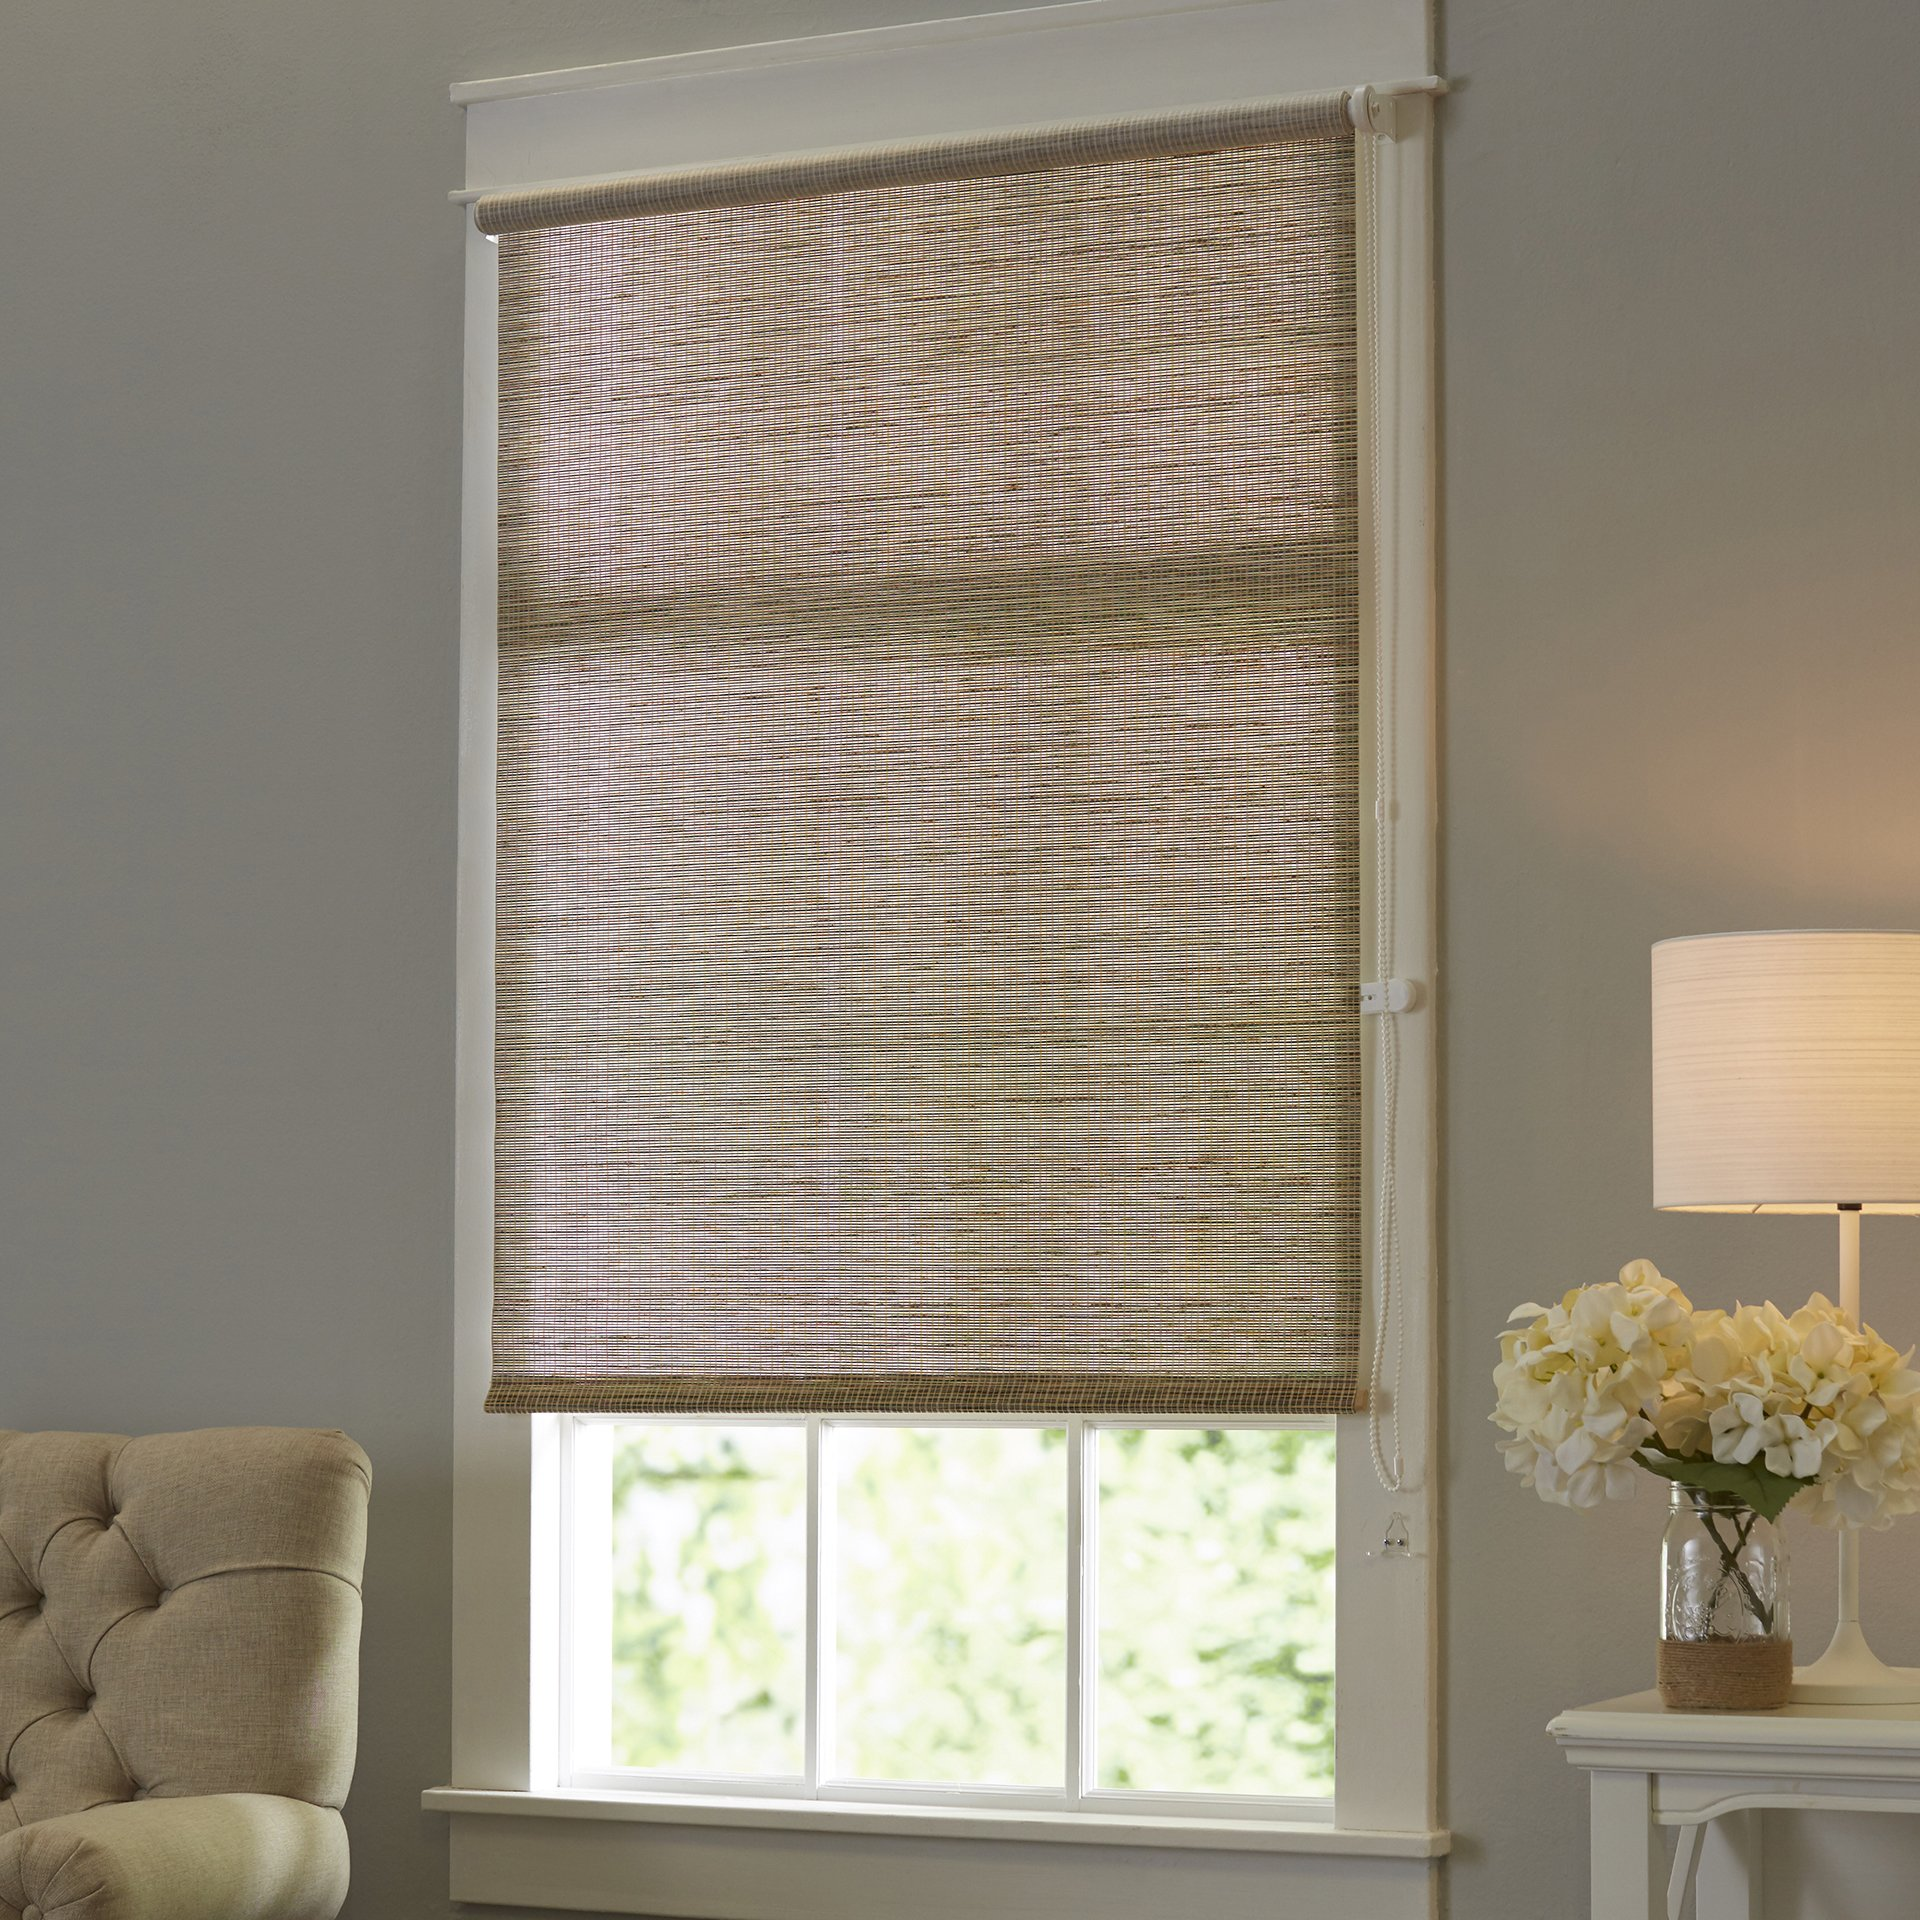 Excellent Menards Window Blinds for Best Window Blind Ideas: Telephone Number For Menards | Menards Window Blinds | Lichtenberg Curtains